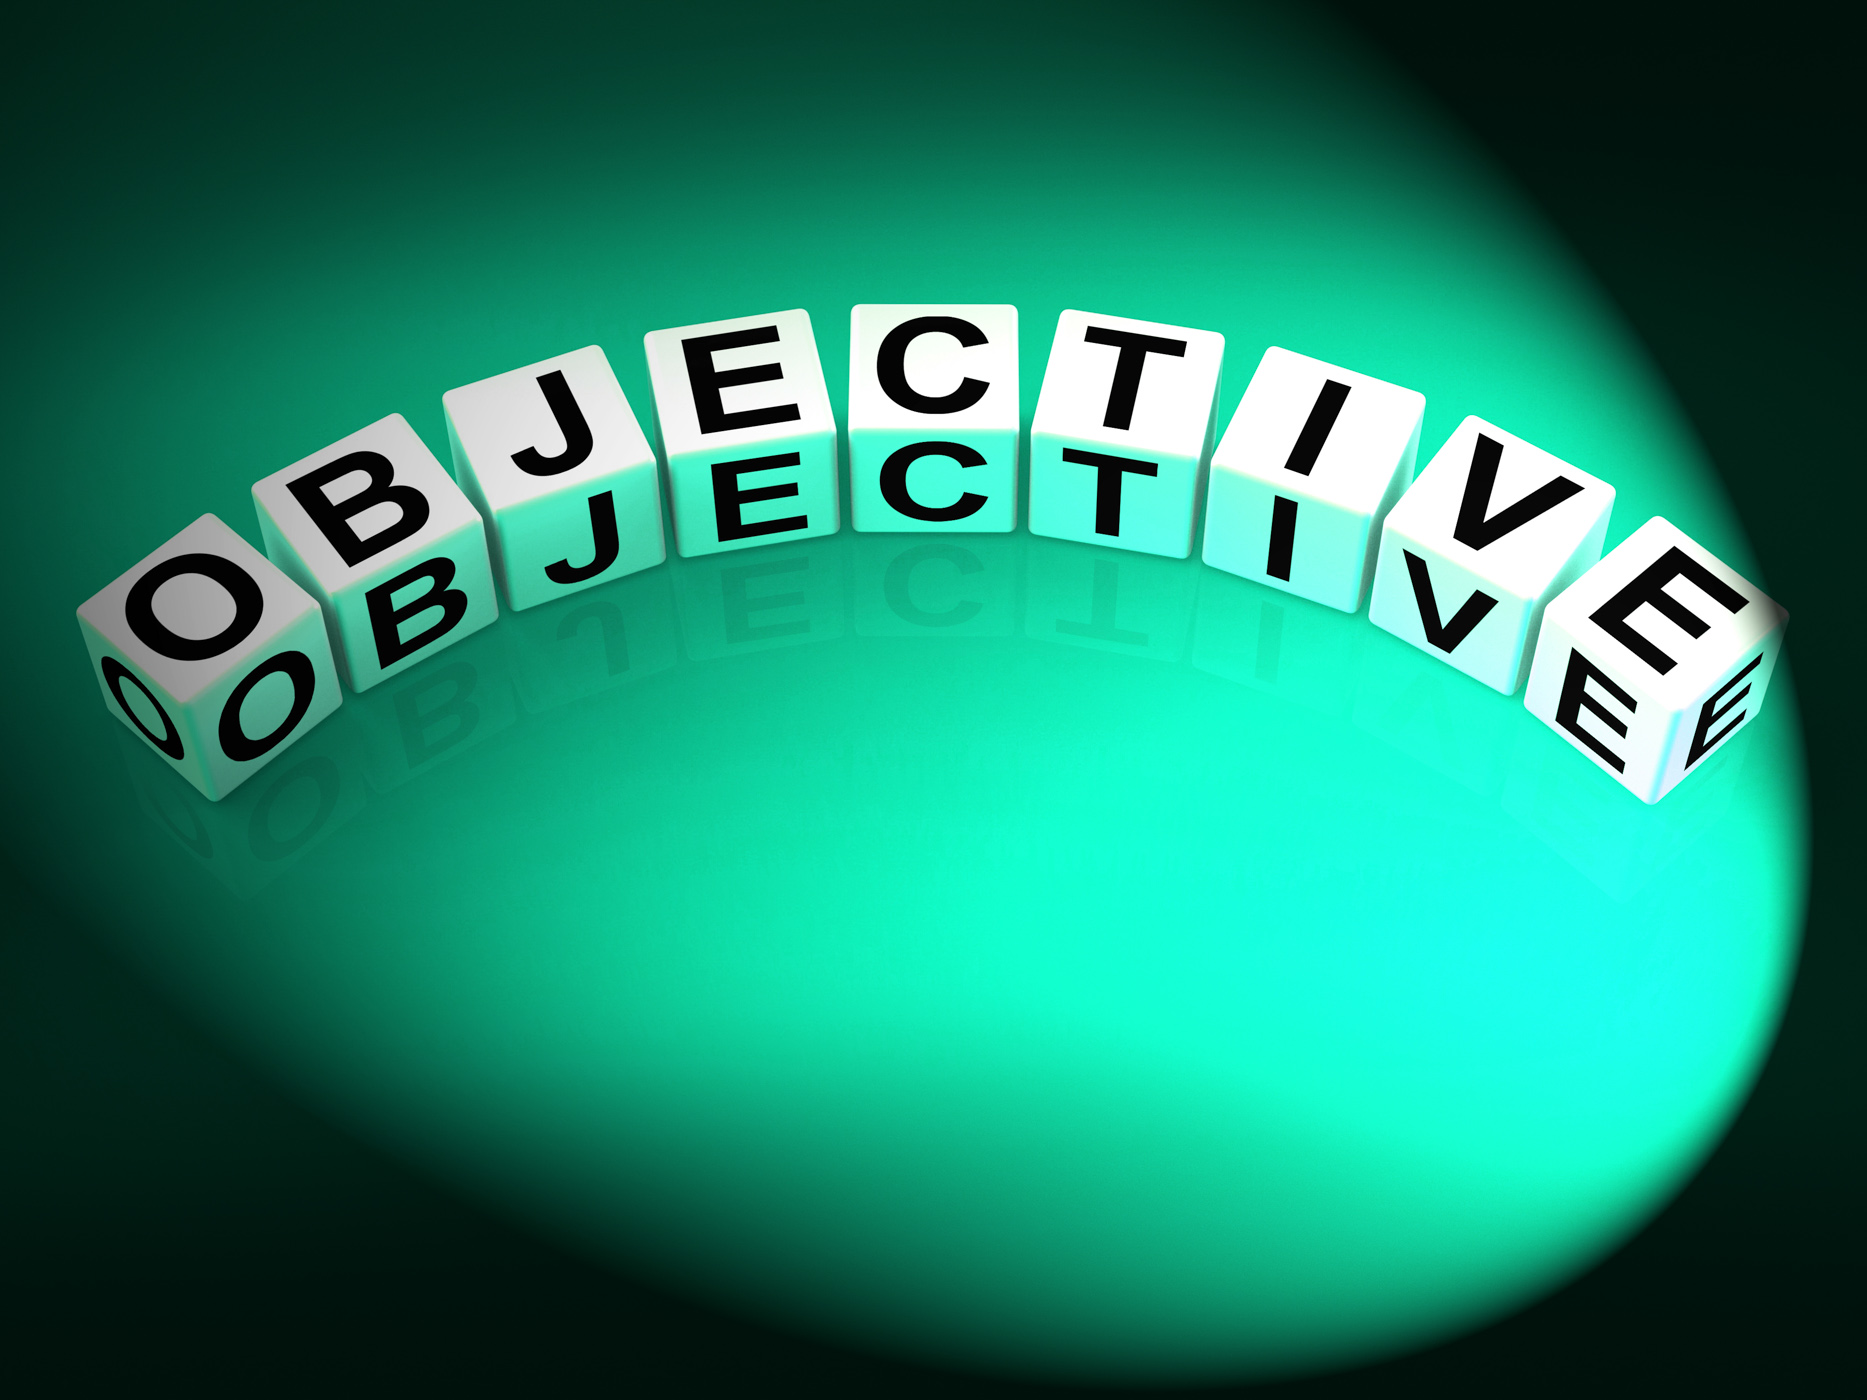 Objective Dice Mean Goals Targets and Objectives, Achieve, Intent, Target, Plan, HQ Photo